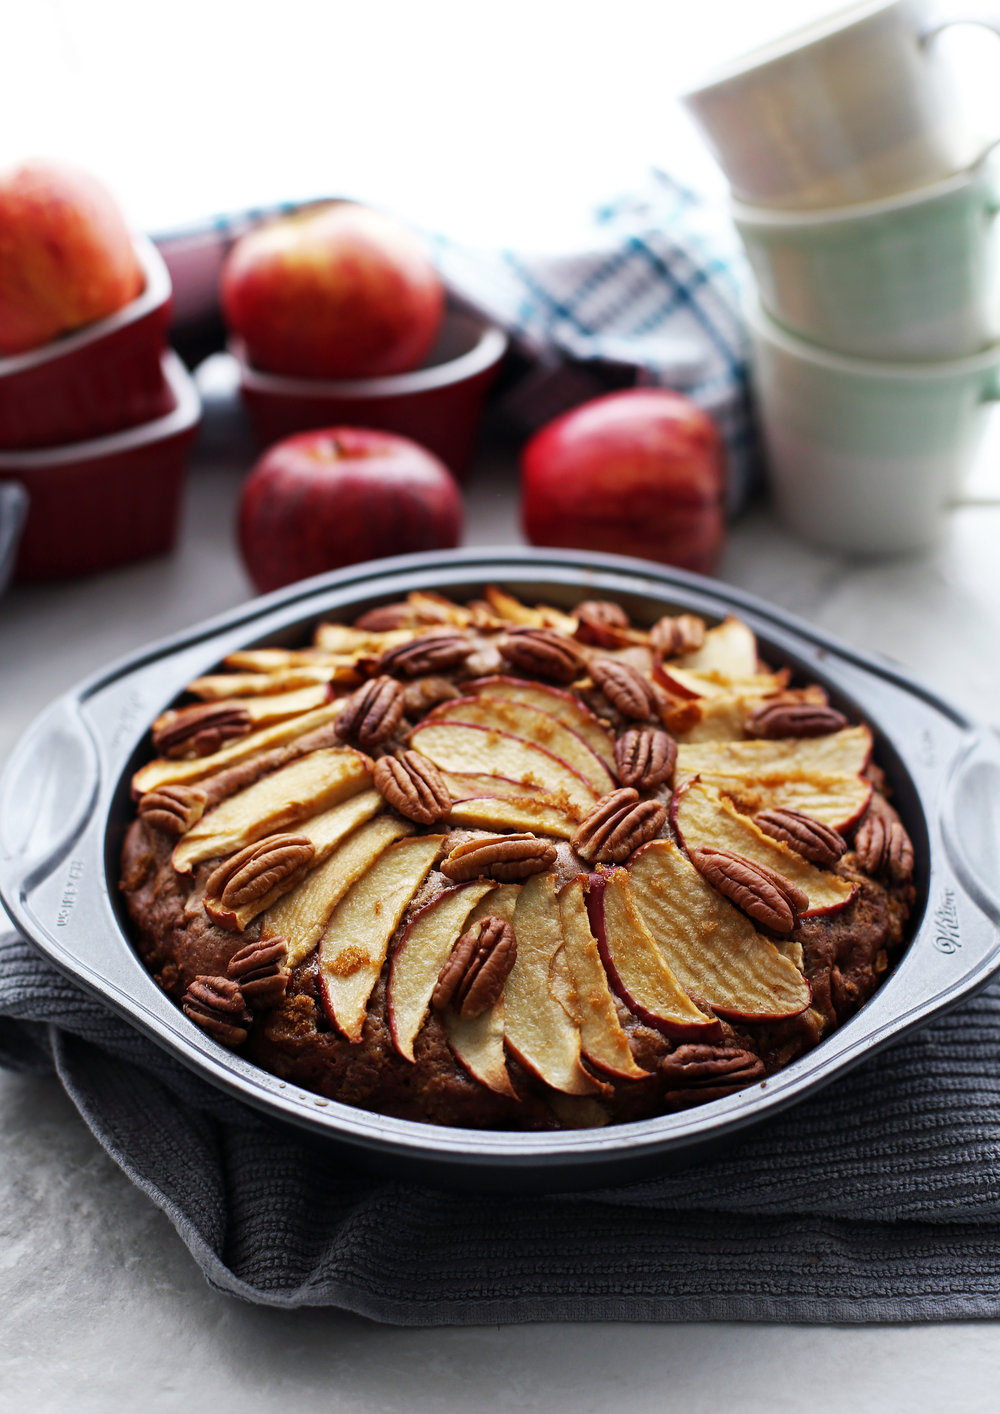 Baked apple cinnamon pecan cake with apple slices and pecans on top in a round cake pan.